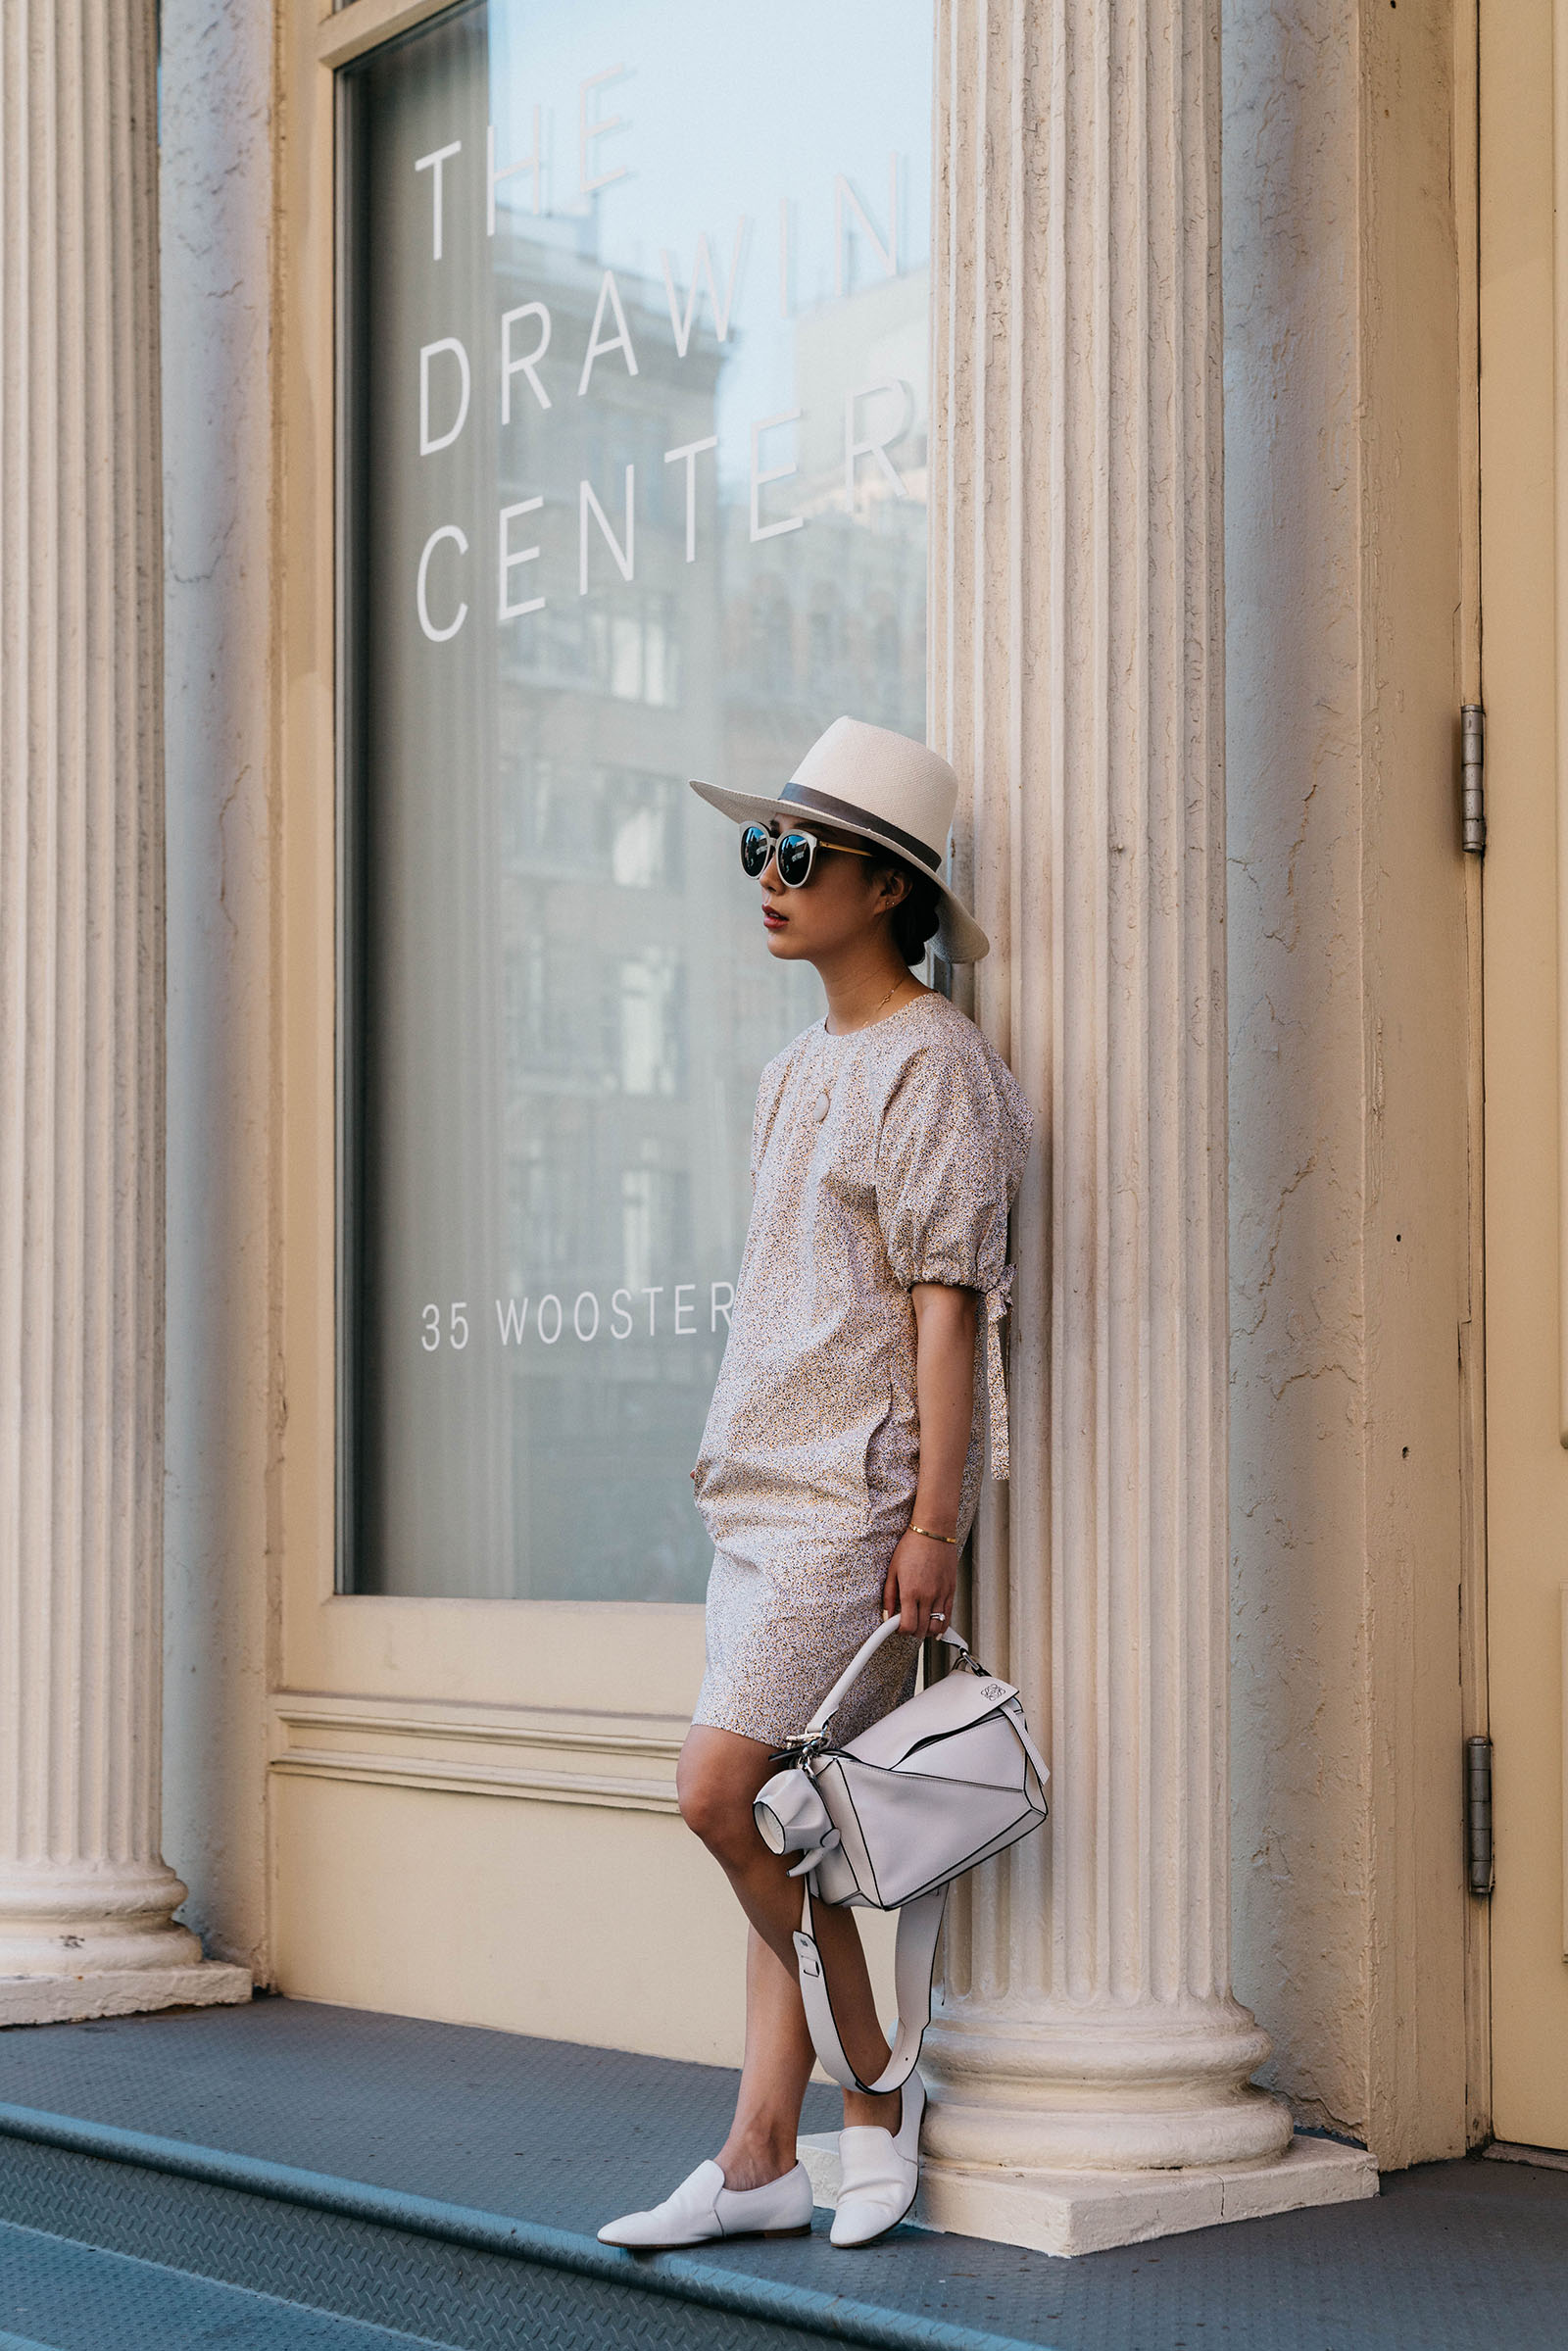 COS Dress ,  The Row Shoes ,  Loewe Bag  and  Keychain ,  Janessa Leone Hat